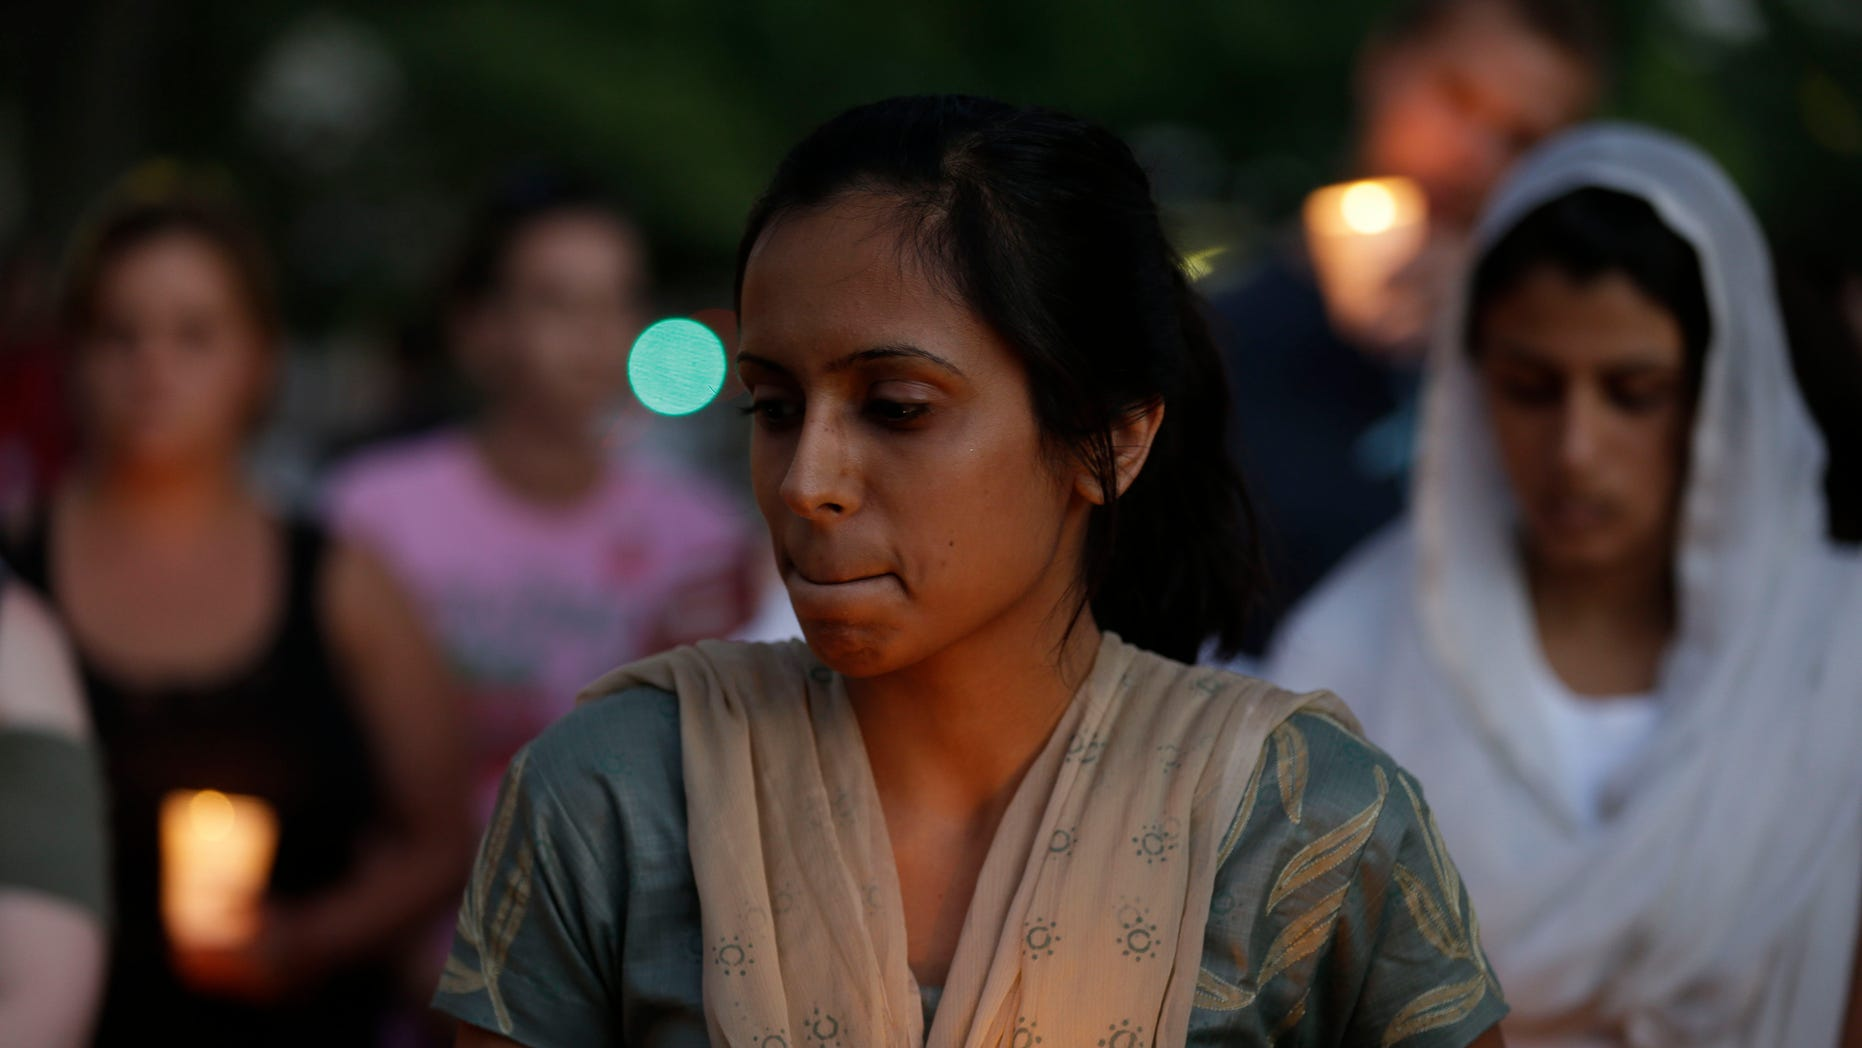 Aug 5, 2012: Mourners take part in a candle light vigil for the victims of the Sikh Temple of Wisconsin shooting, in Milwaukee.